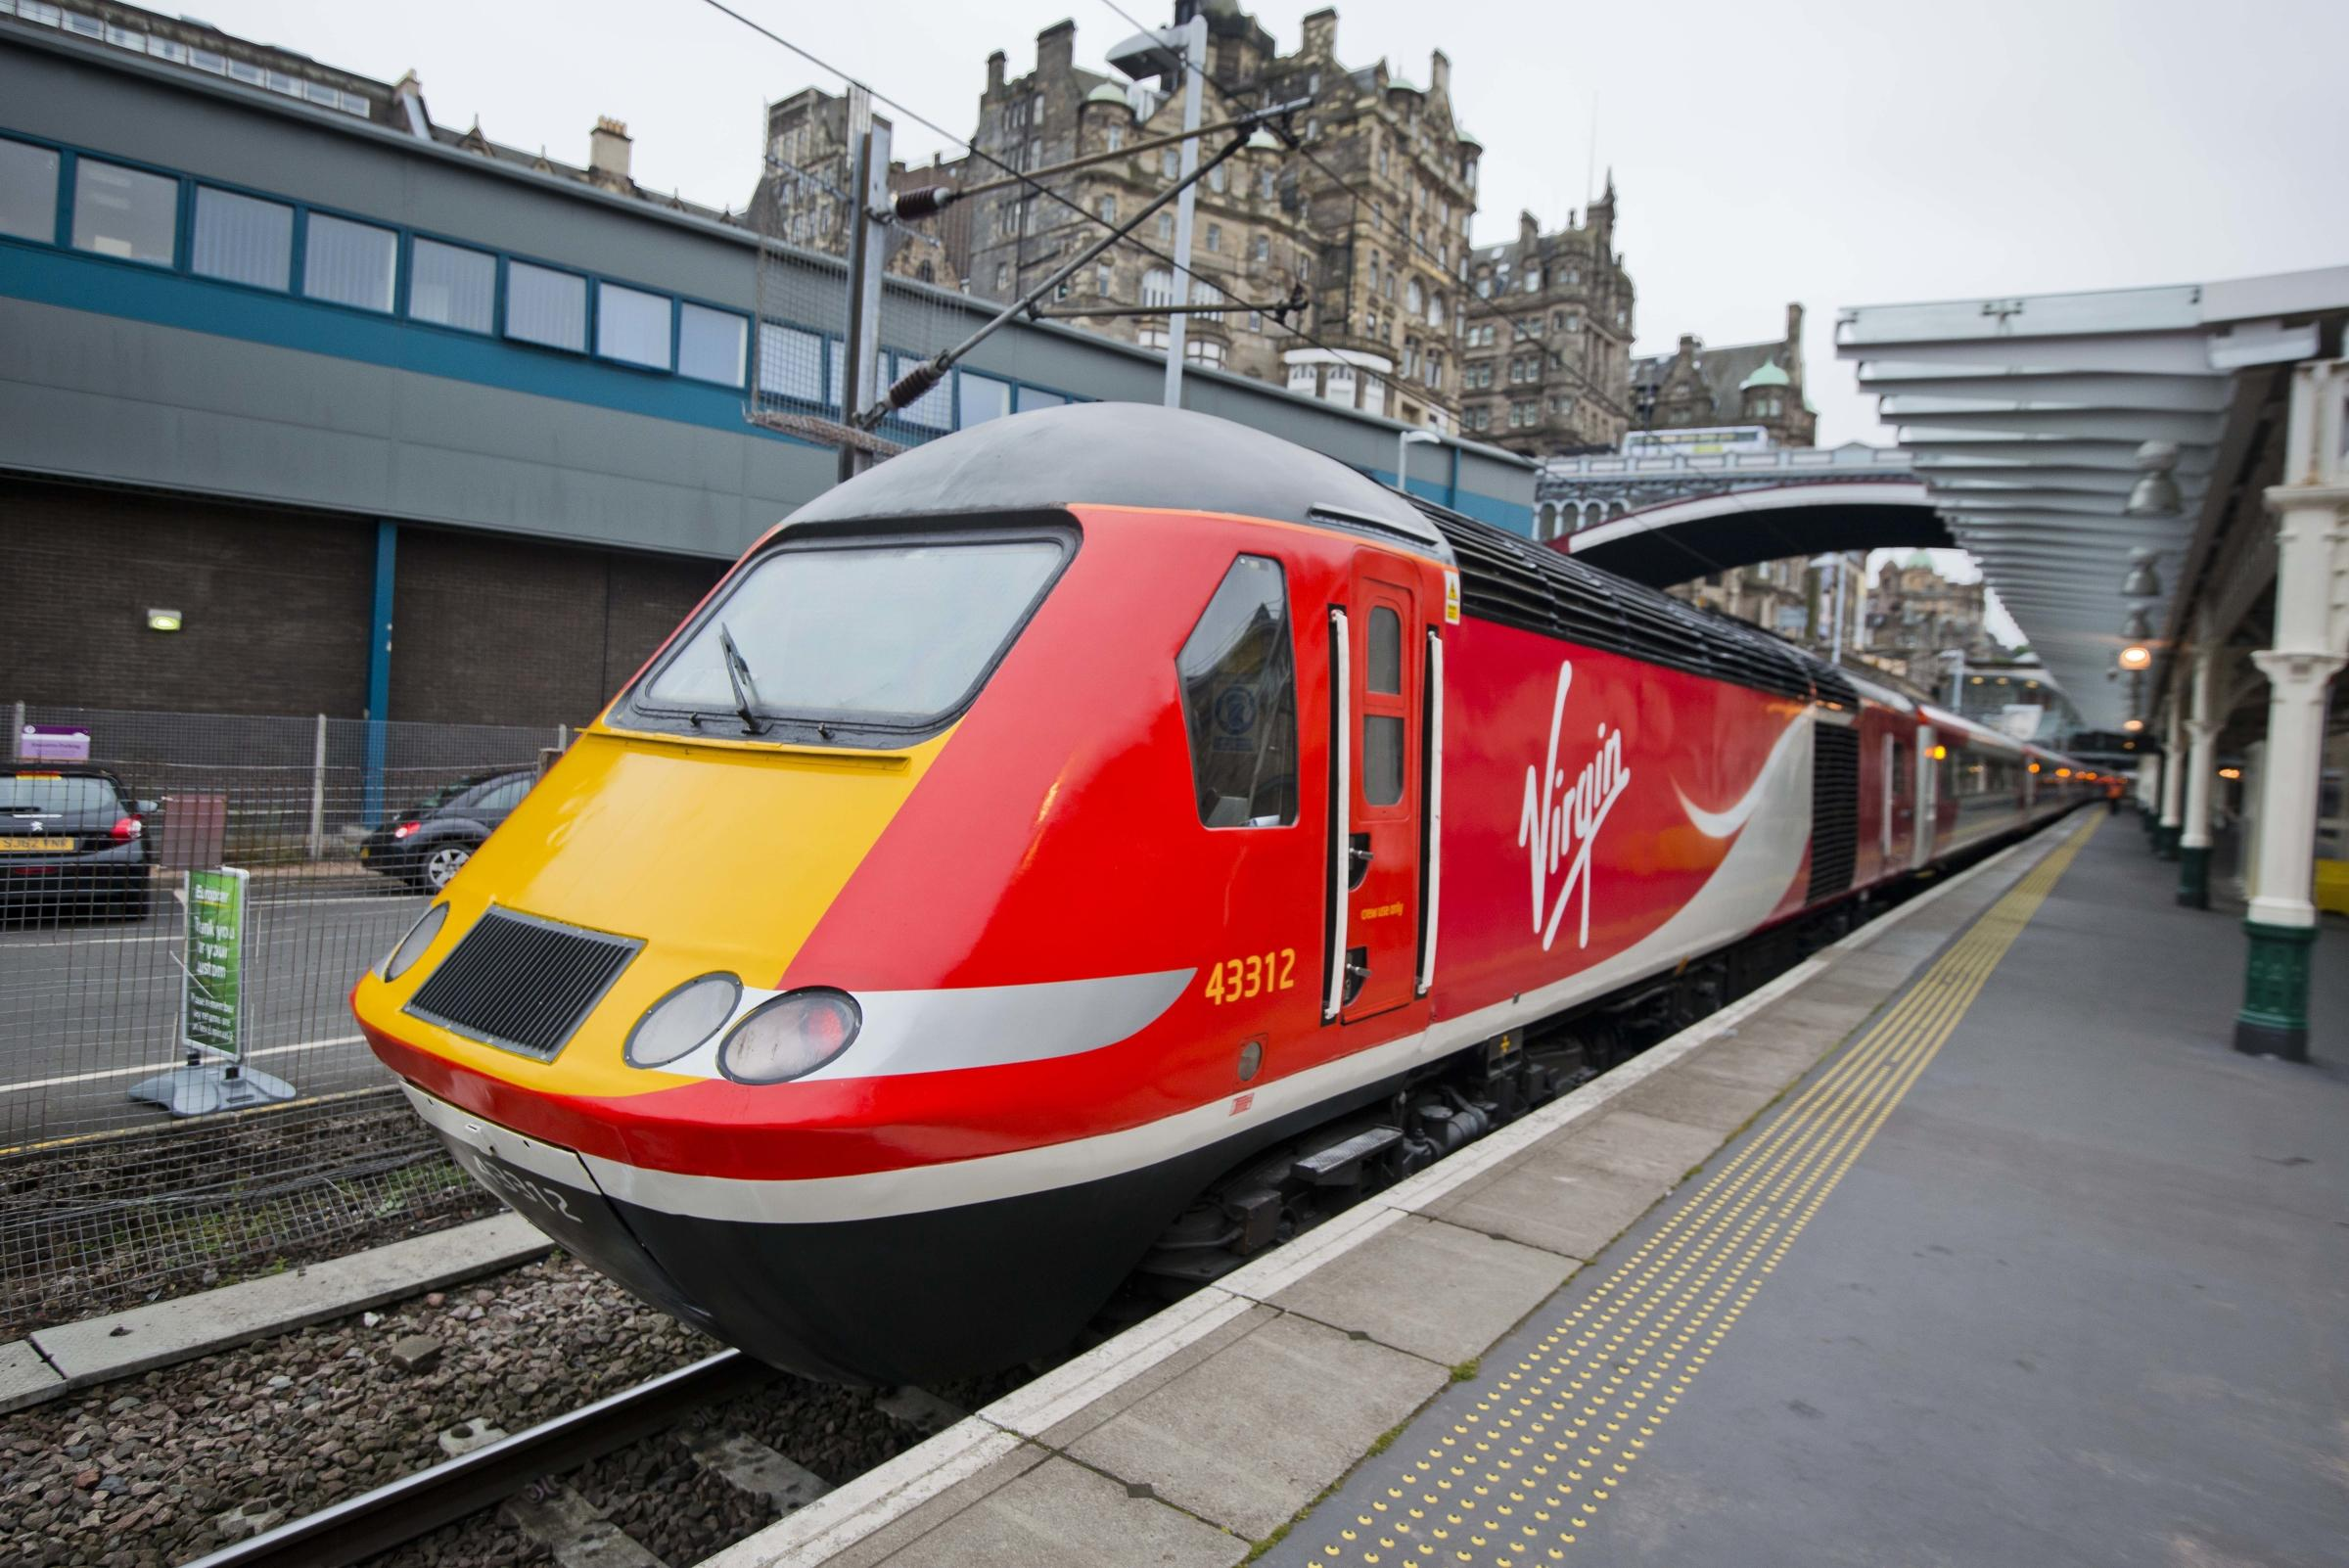 MPs to probe East Coast rail franchise debacle